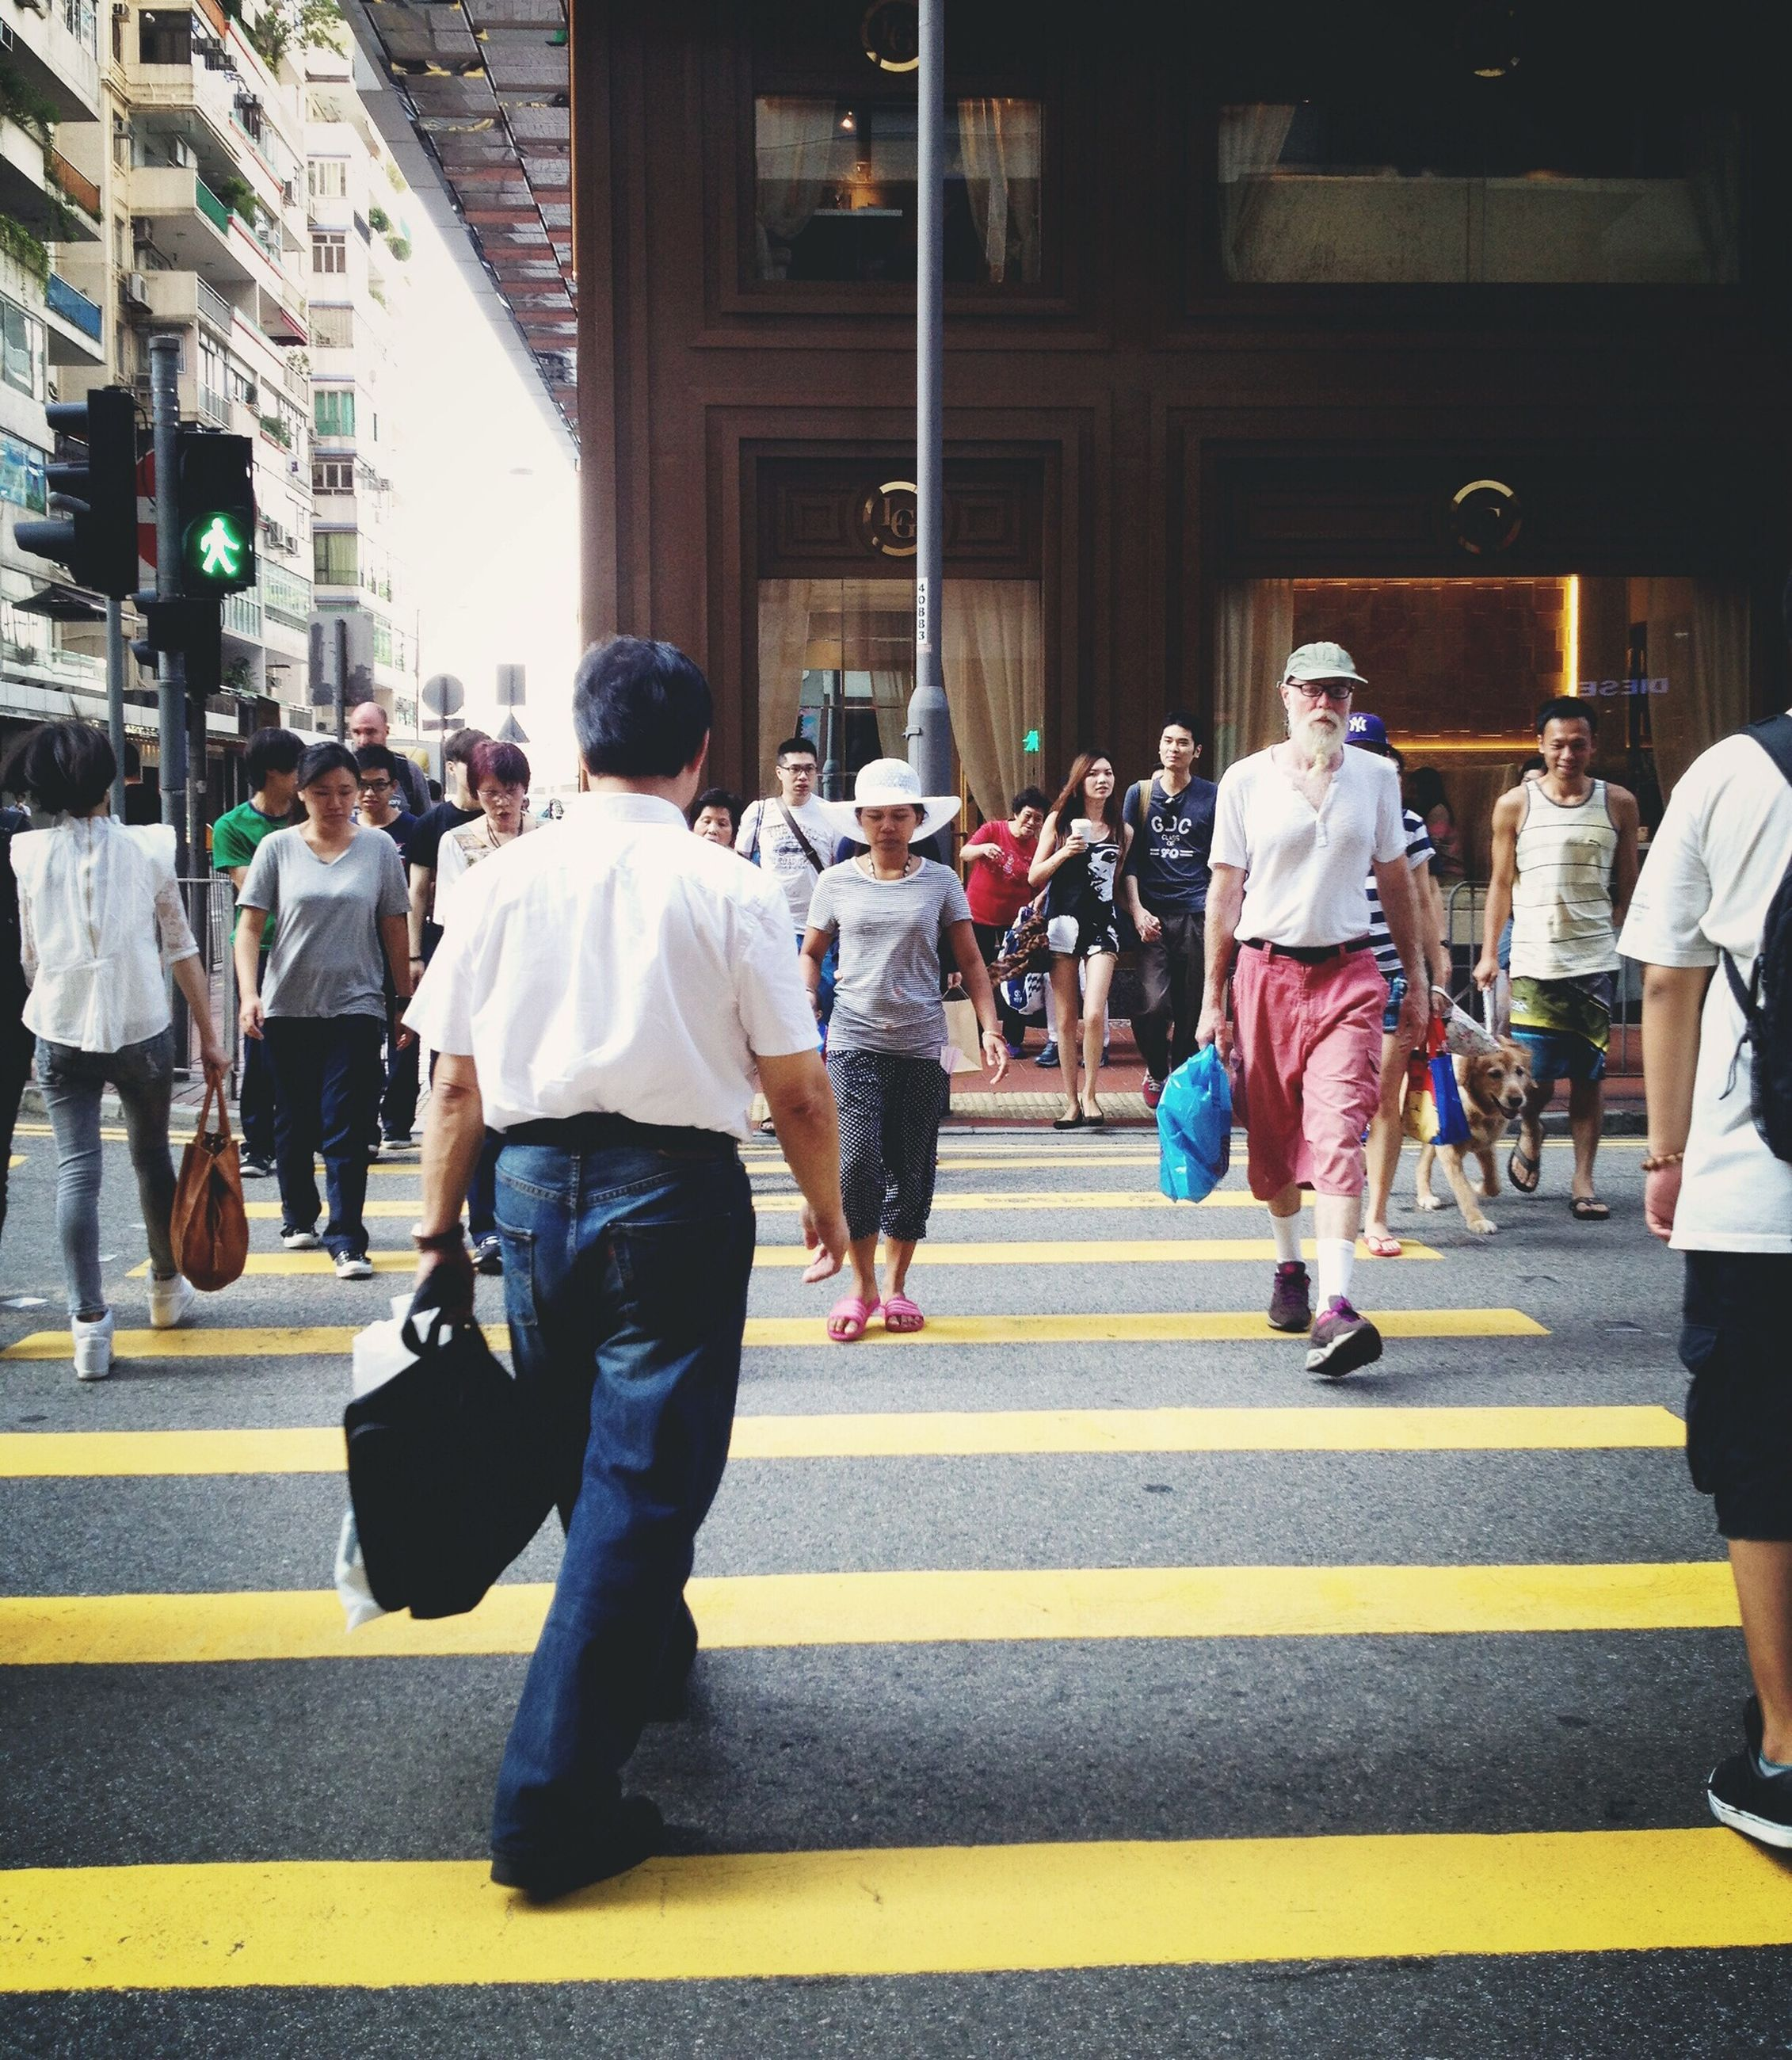 men, large group of people, person, walking, lifestyles, street, city life, city, leisure activity, full length, built structure, architecture, rear view, casual clothing, medium group of people, transportation, building exterior, on the move, group of people